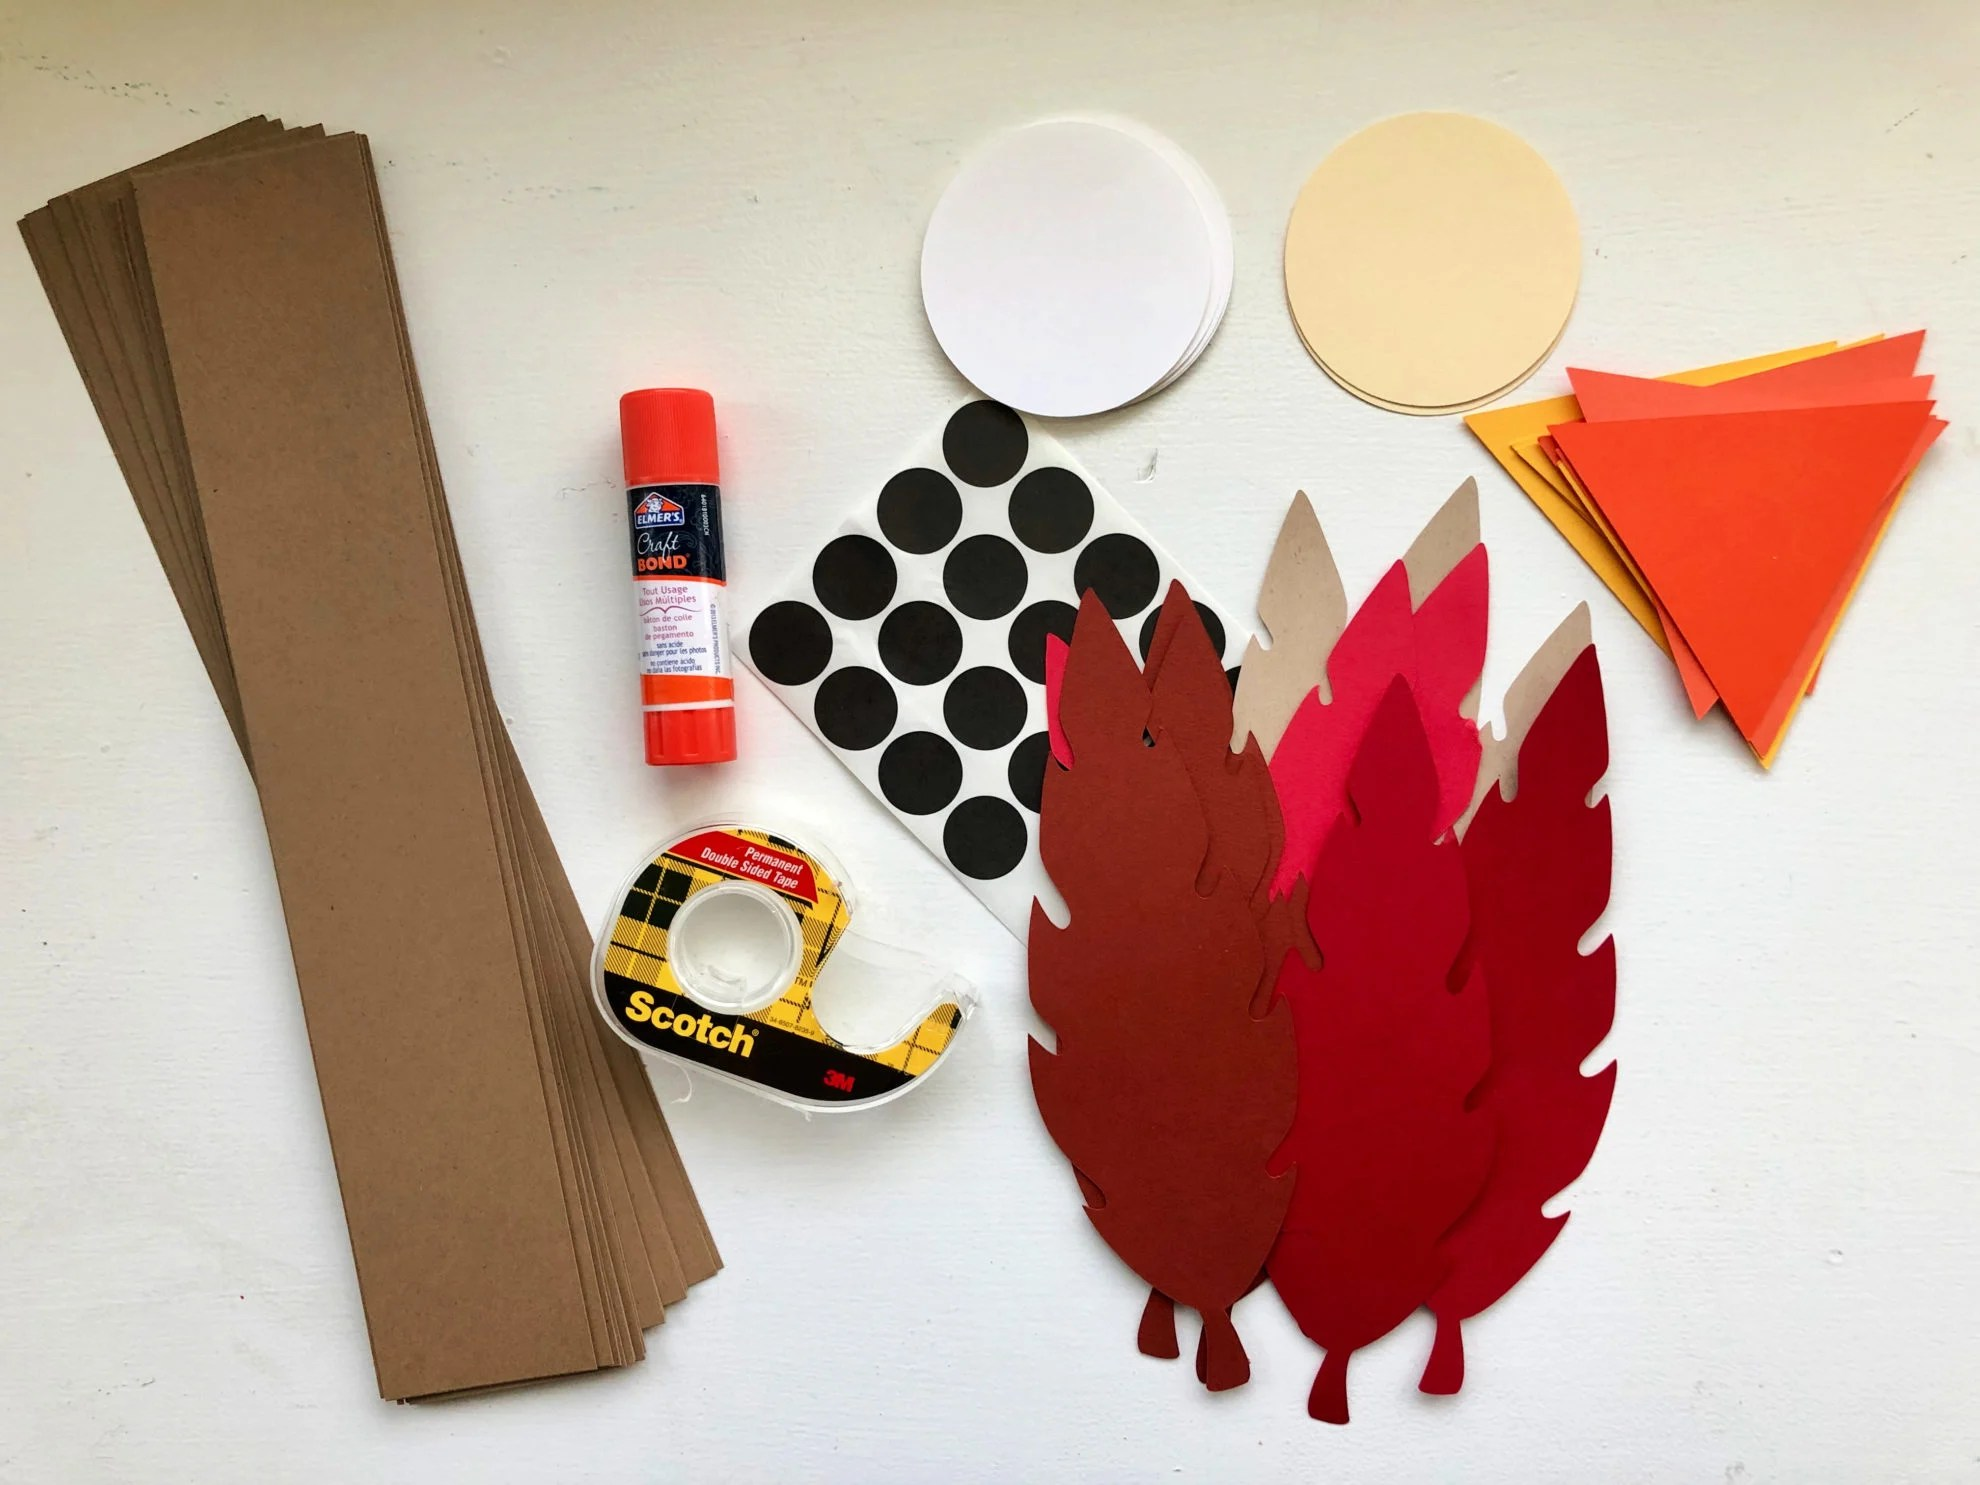 Supplies: brown card stock strips, paper feathers, orange paper beaks, tape, glue, black dots.